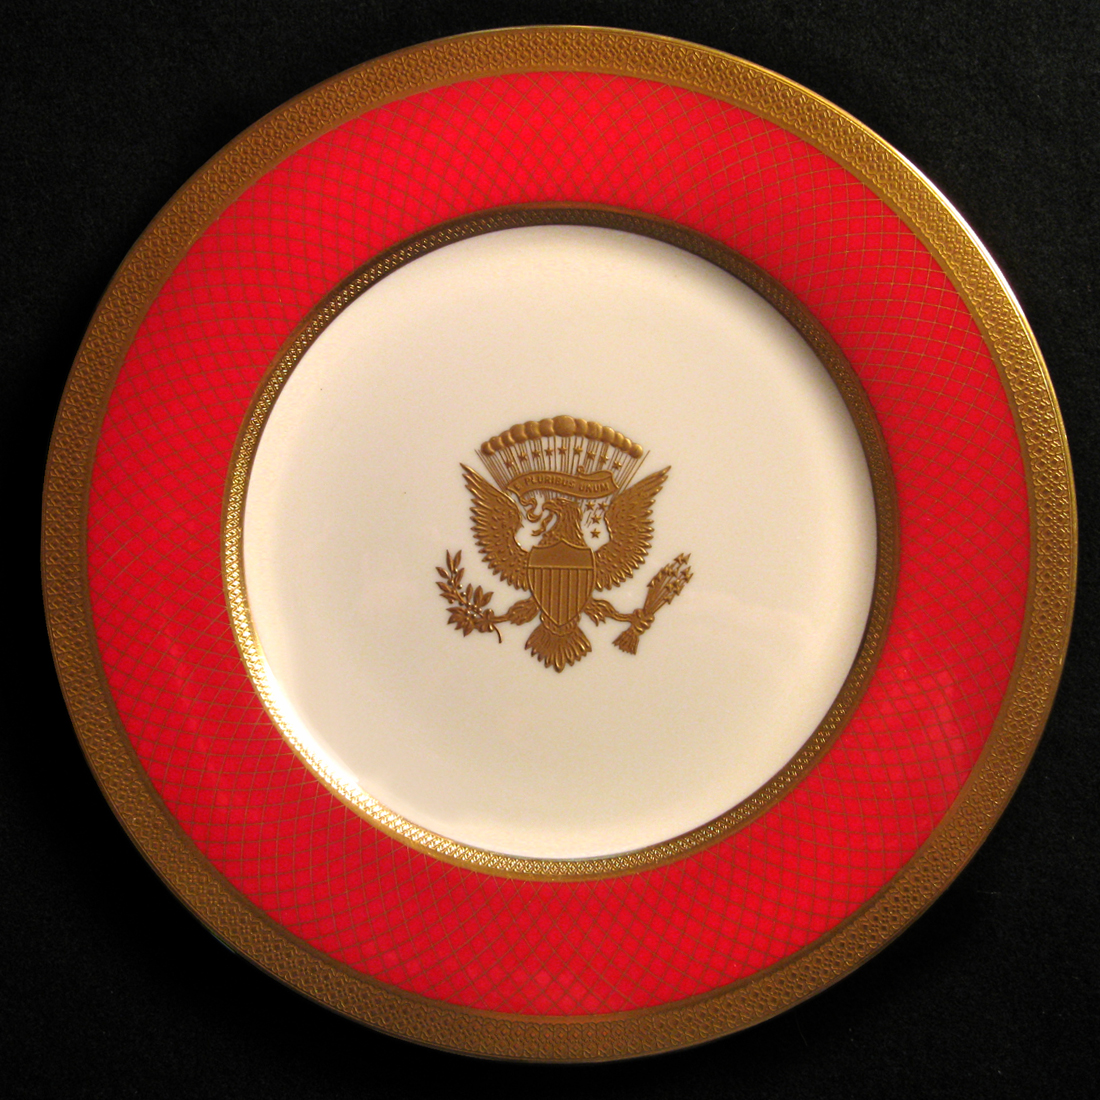 SERVICE PLATE FROM RONALD REAGAN OFFICIAL WHITE HOUSE CHINA